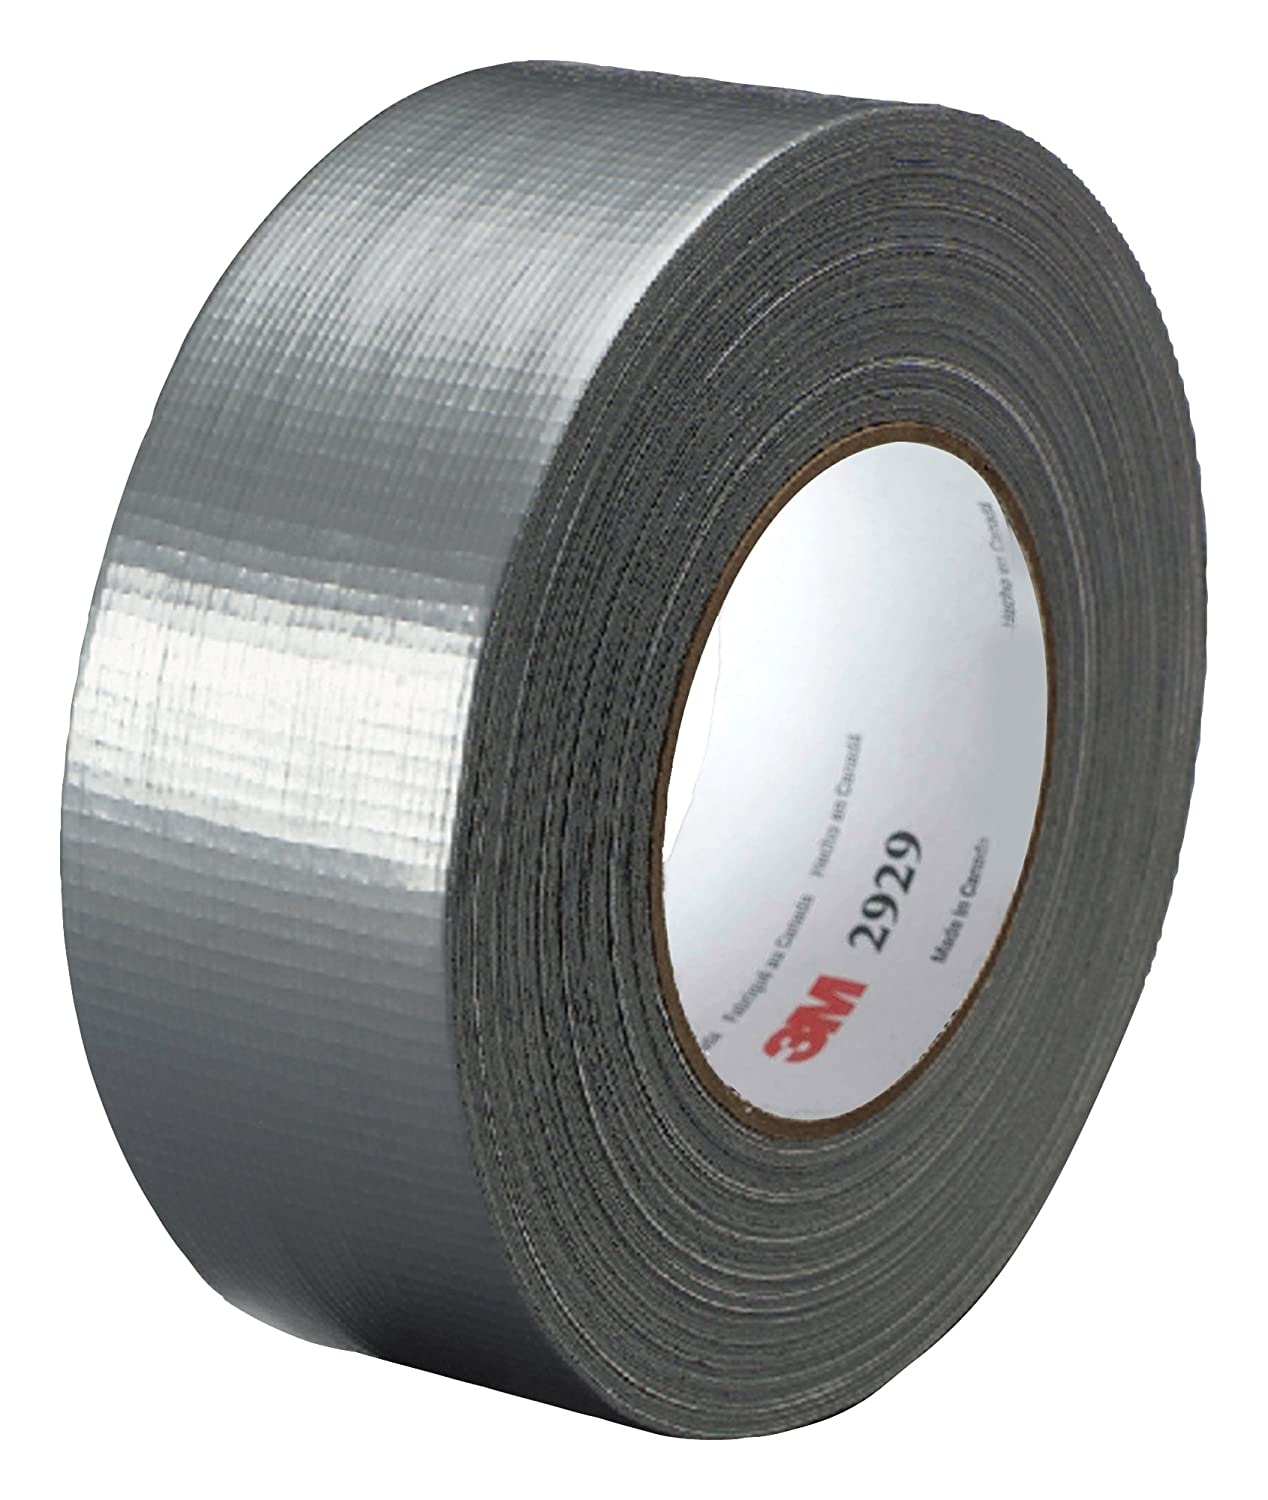 3M Utility Duct Tape 2929 Silver, 1.88 in x 50 yd 5.8 mils (Pack of 1)